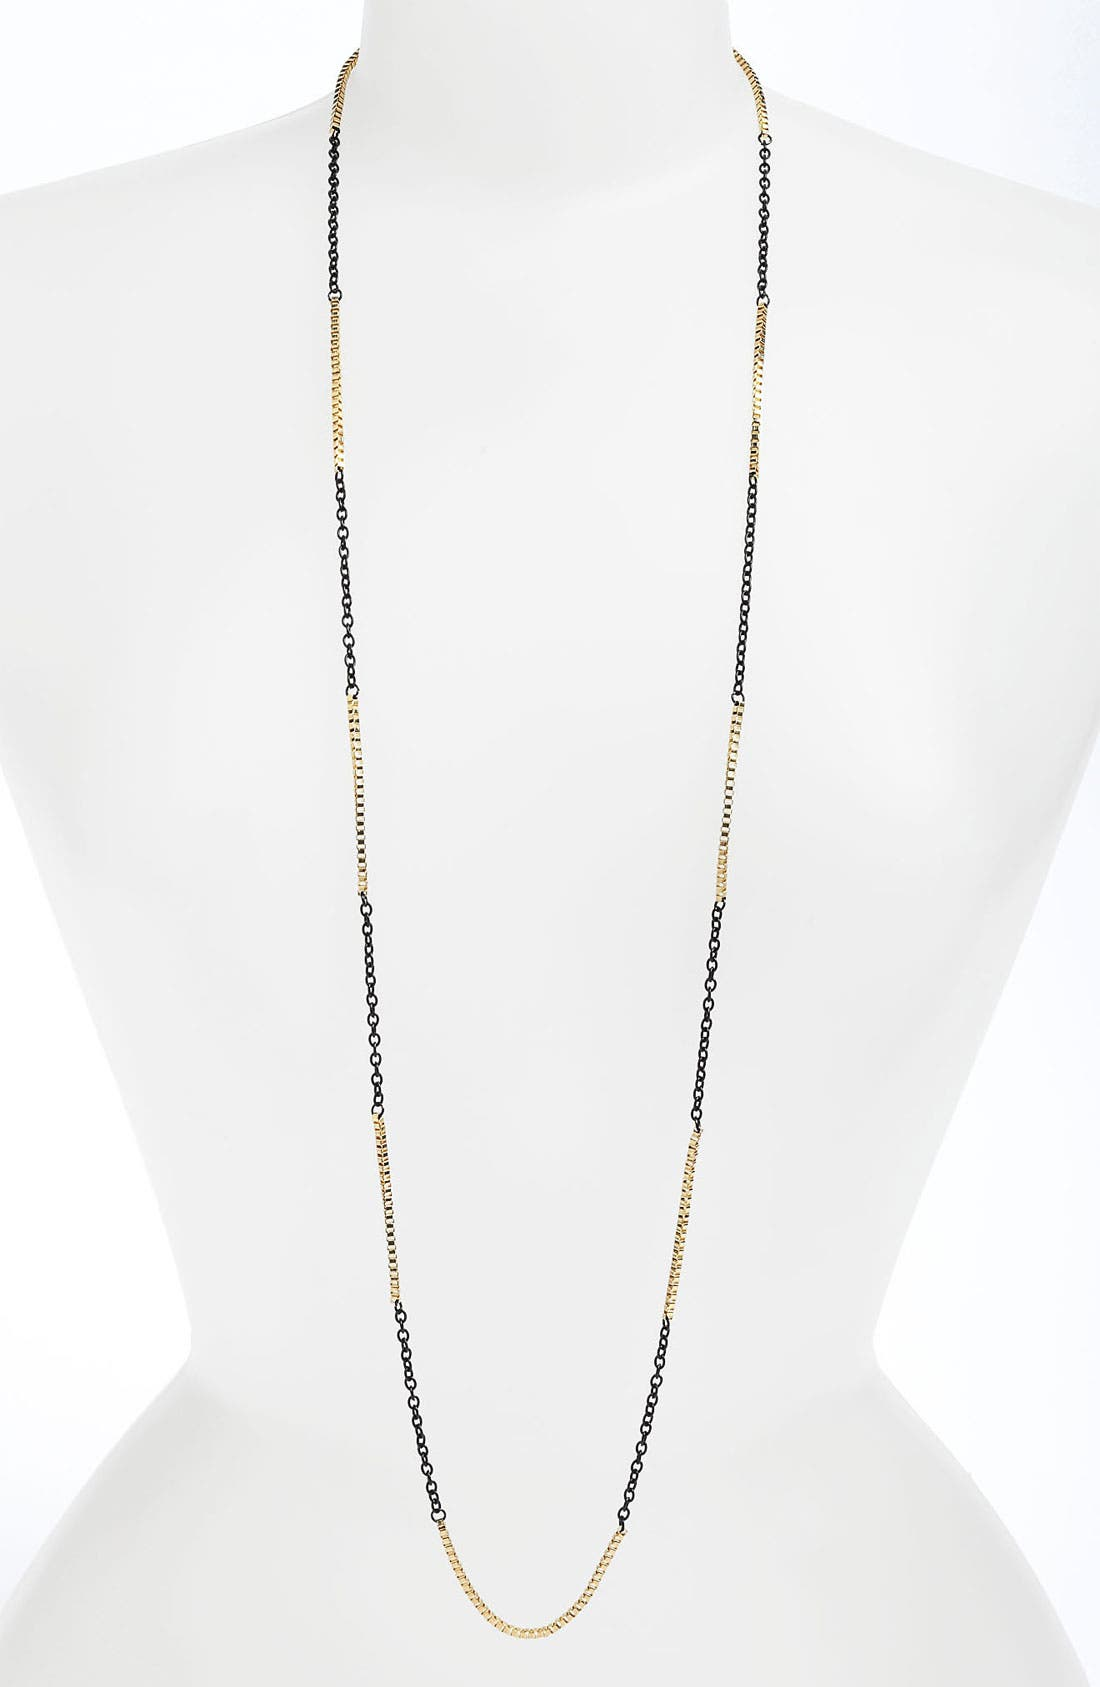 Main Image - Stephan & Co Mixed Chain Necklace